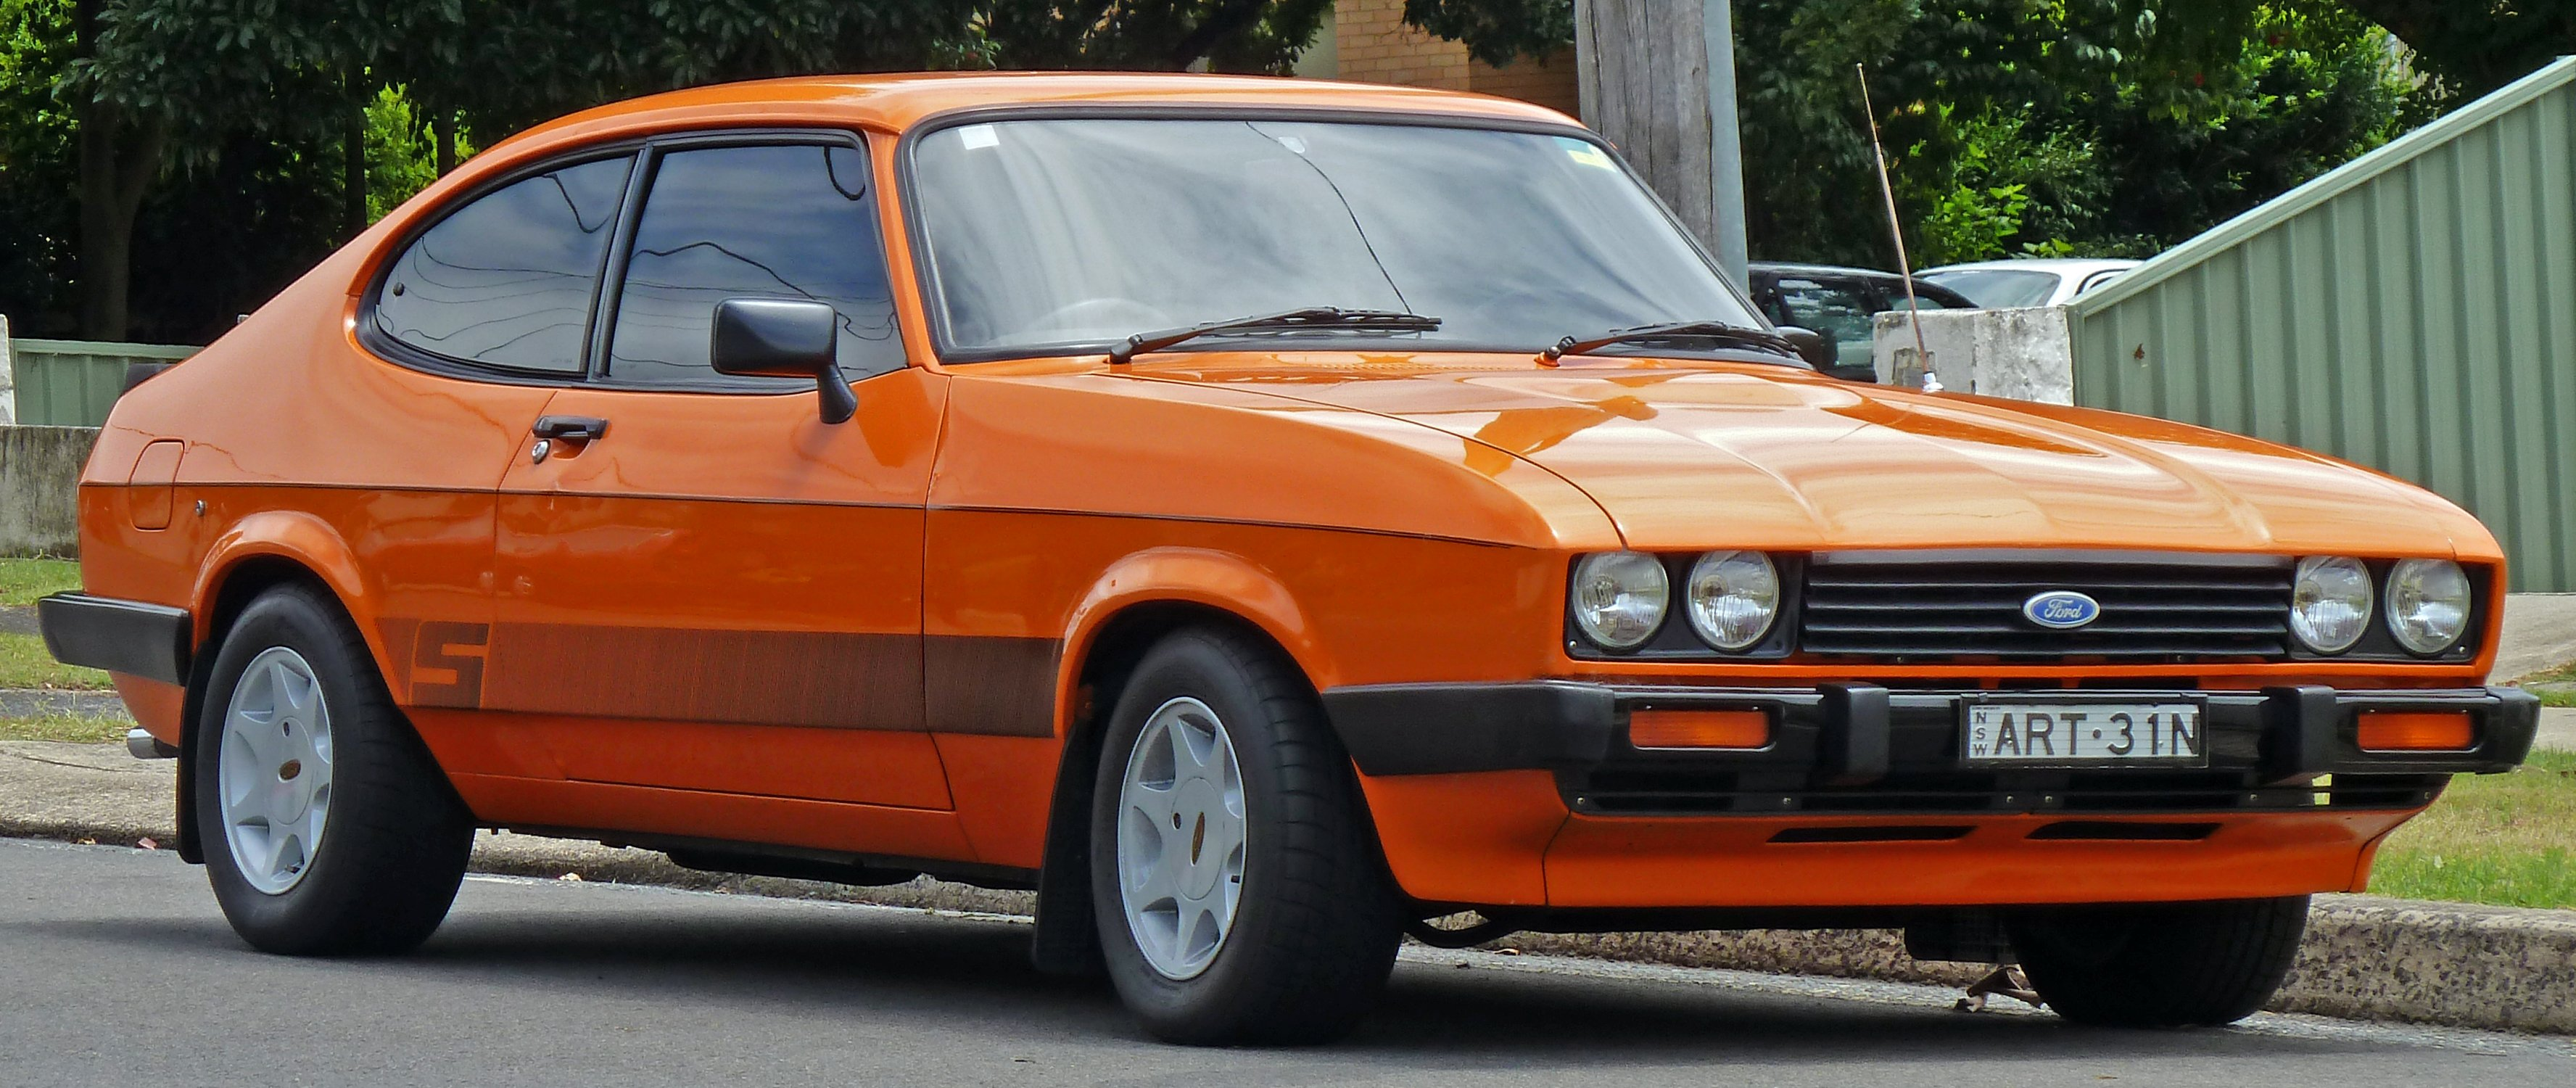 ford capri wallpaper